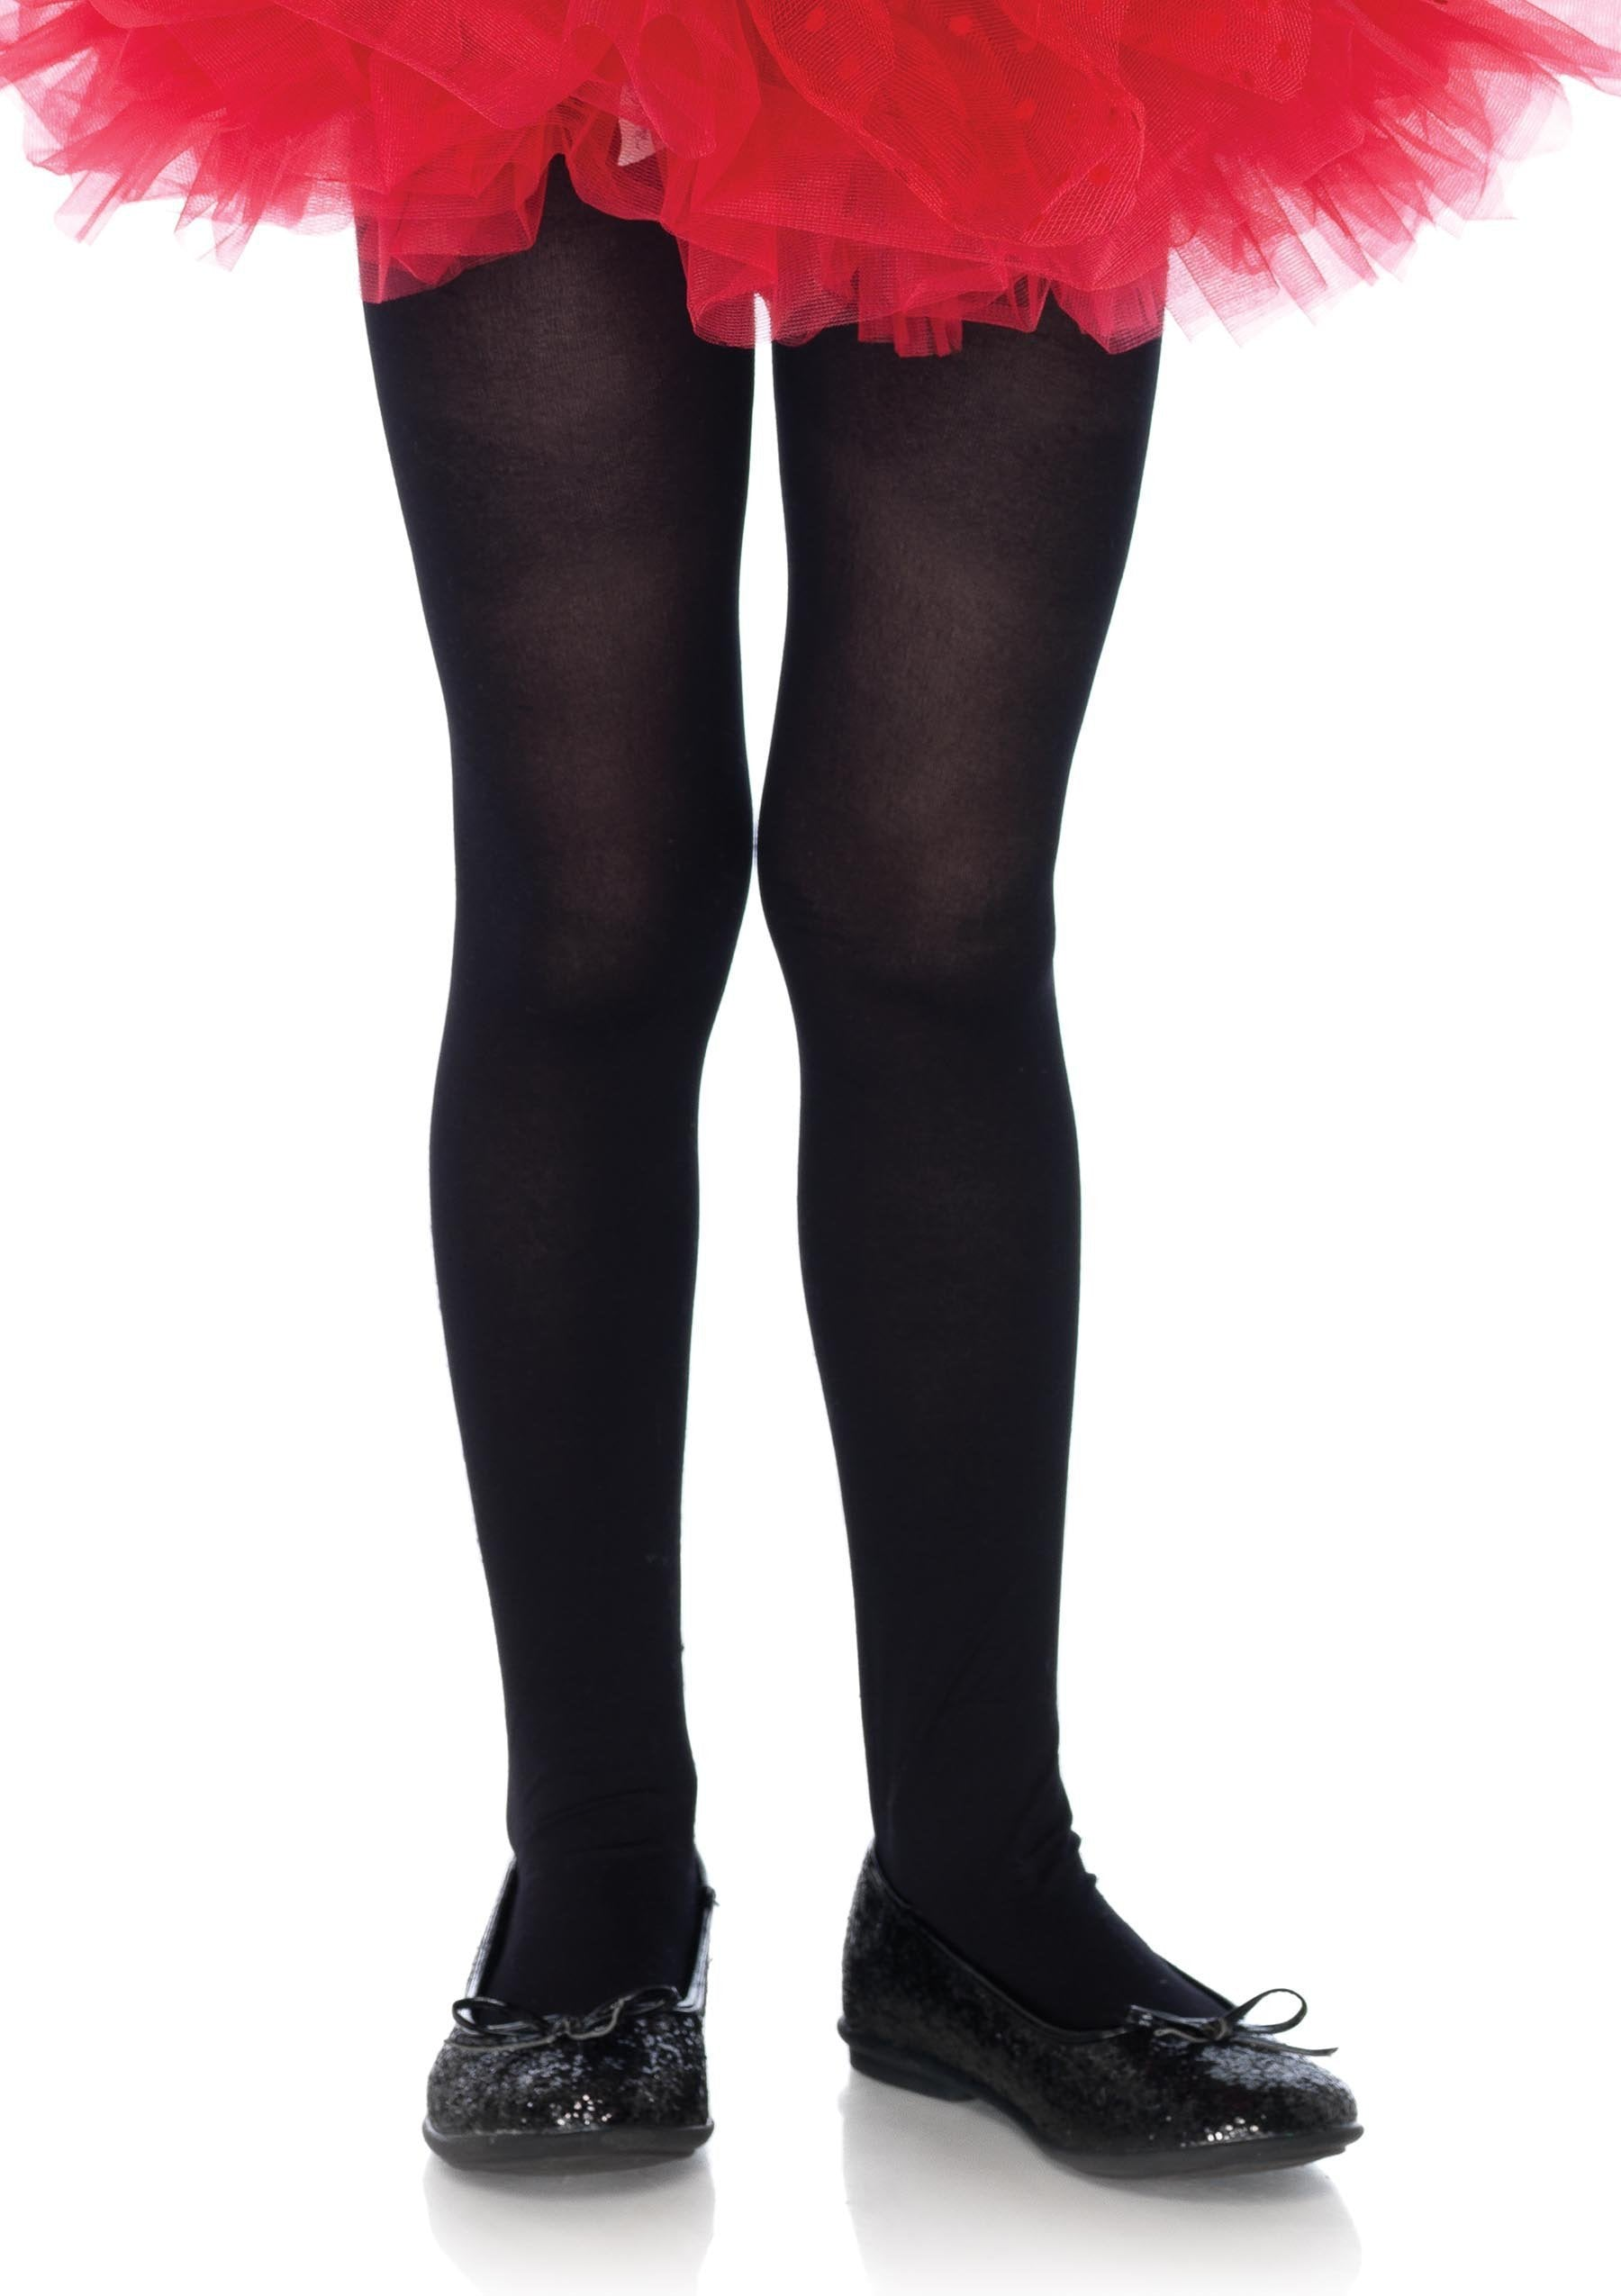 bf501c08684 Adult Tights